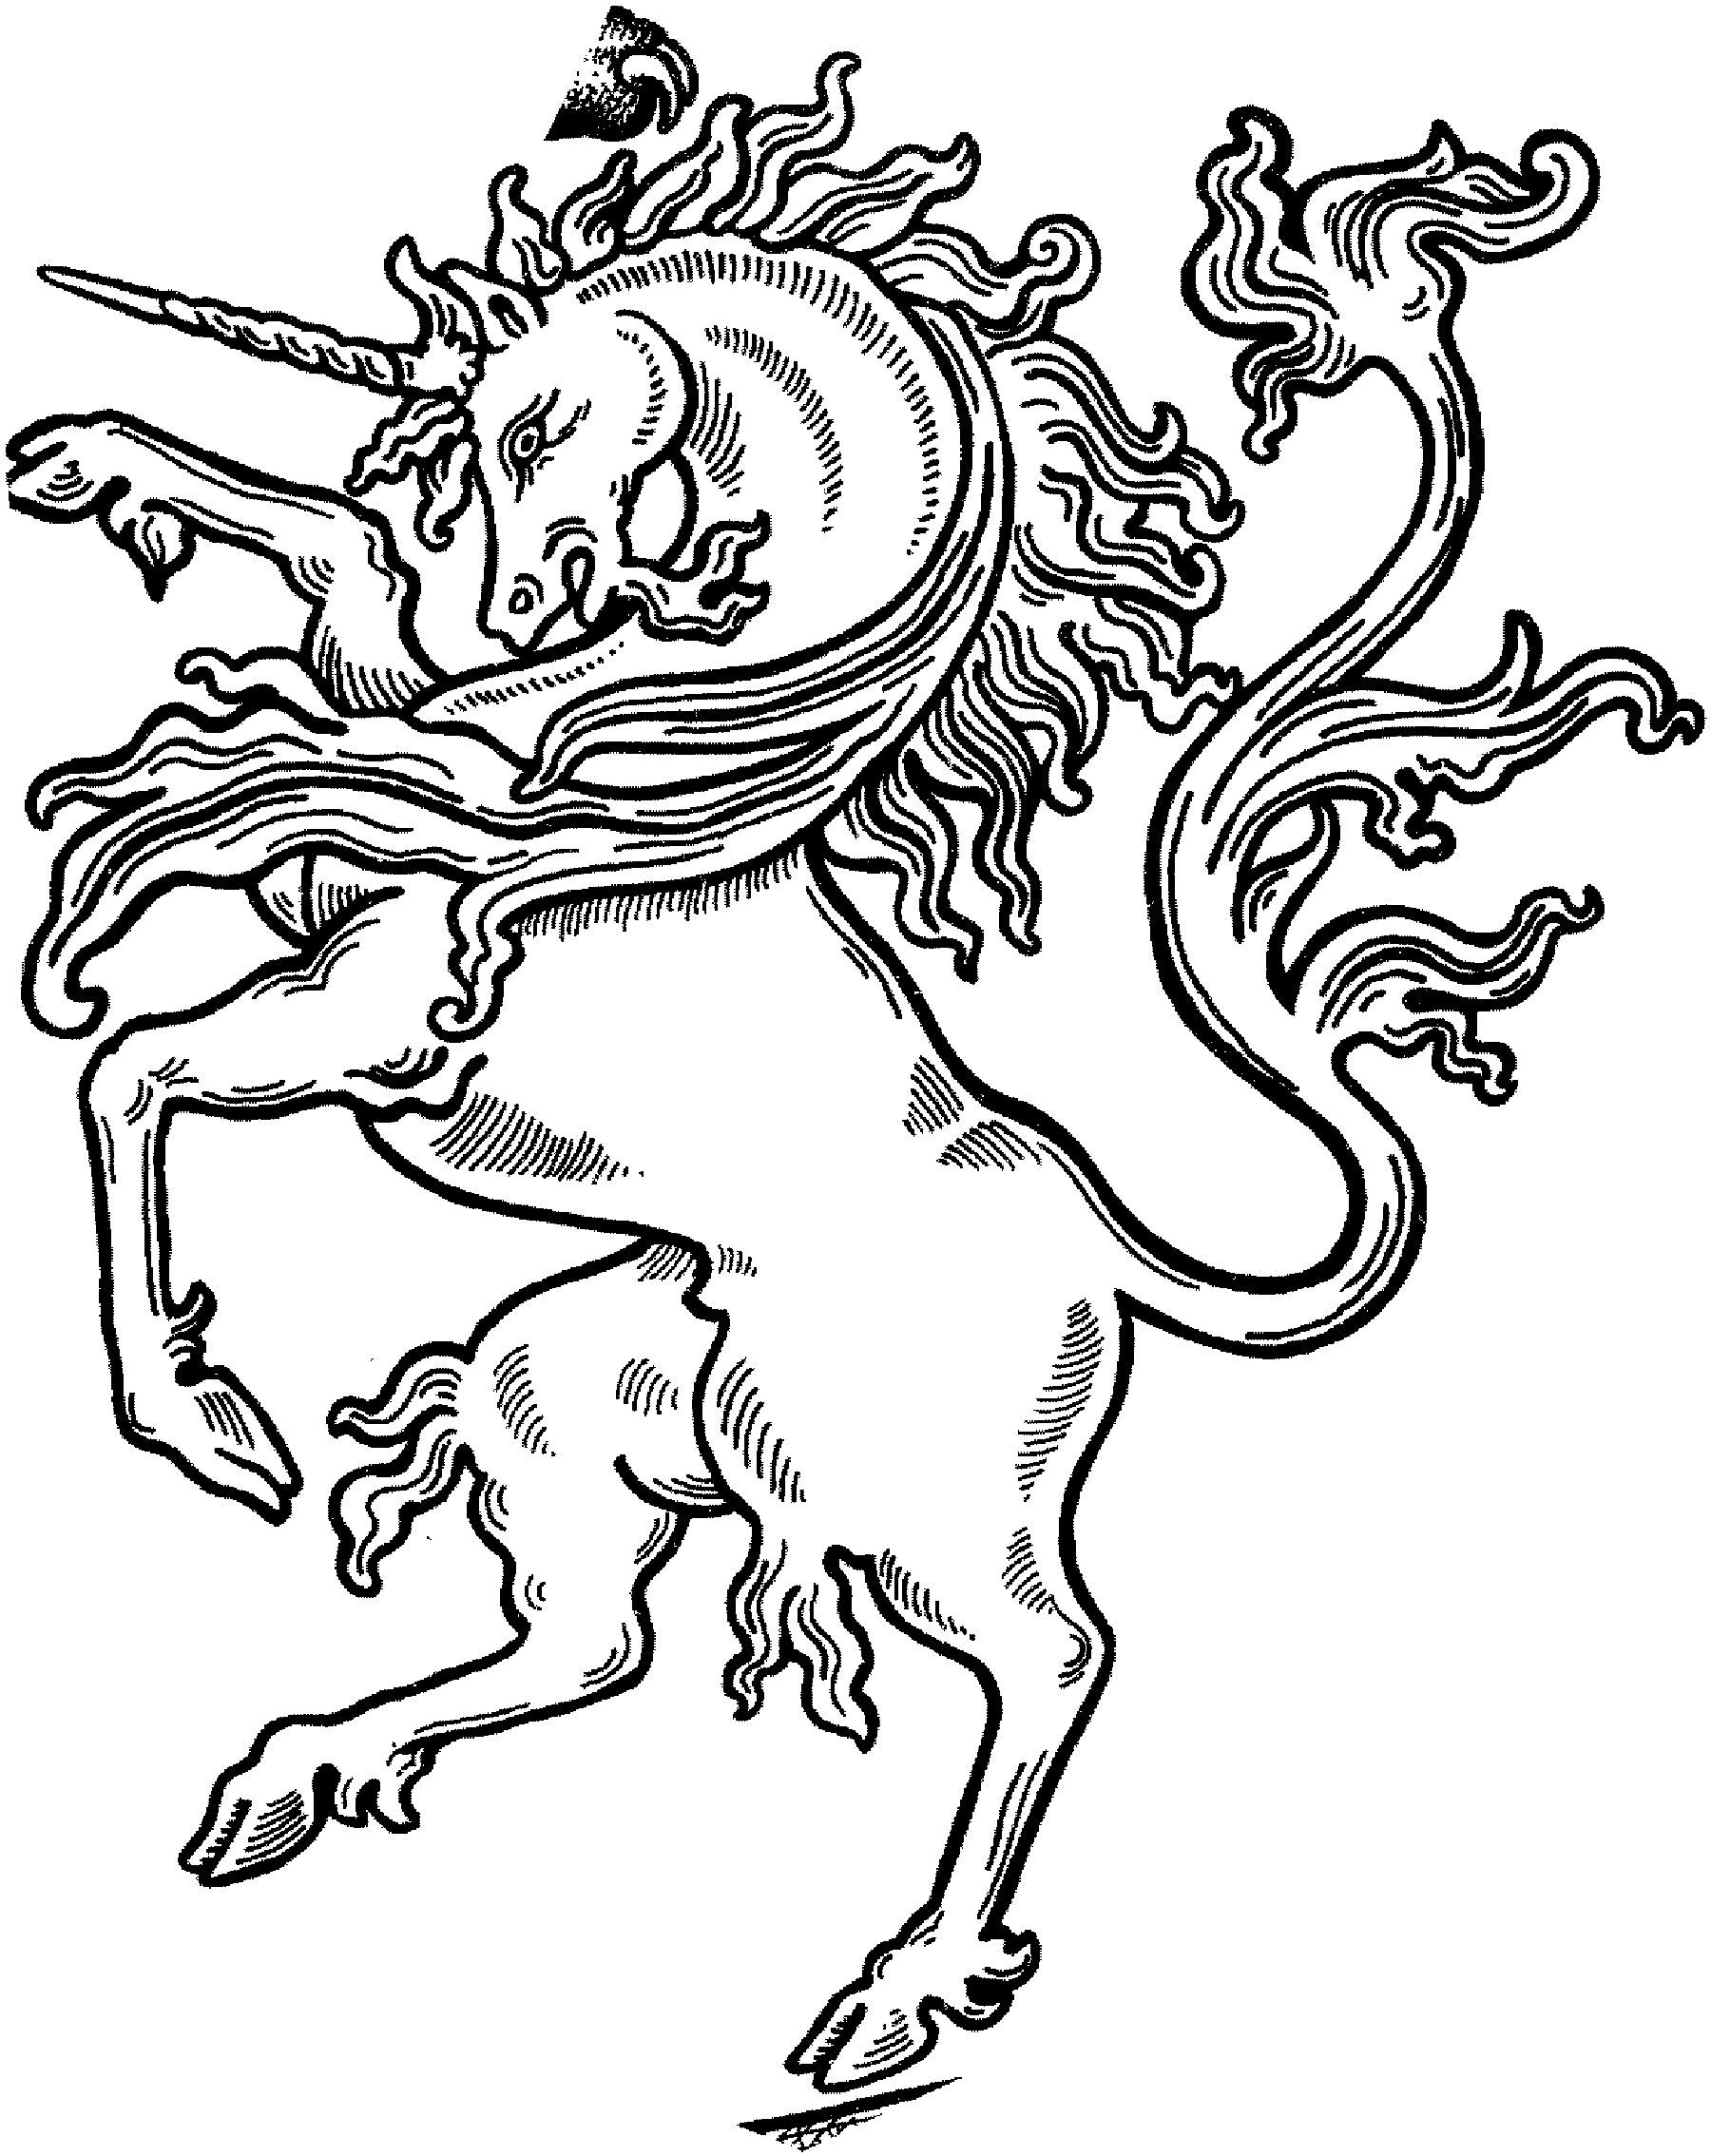 Complicolor Unicorn Coloring Sheet MythicCreatures Printable Pages And Books For Grown Ups At Plicatedcoloring